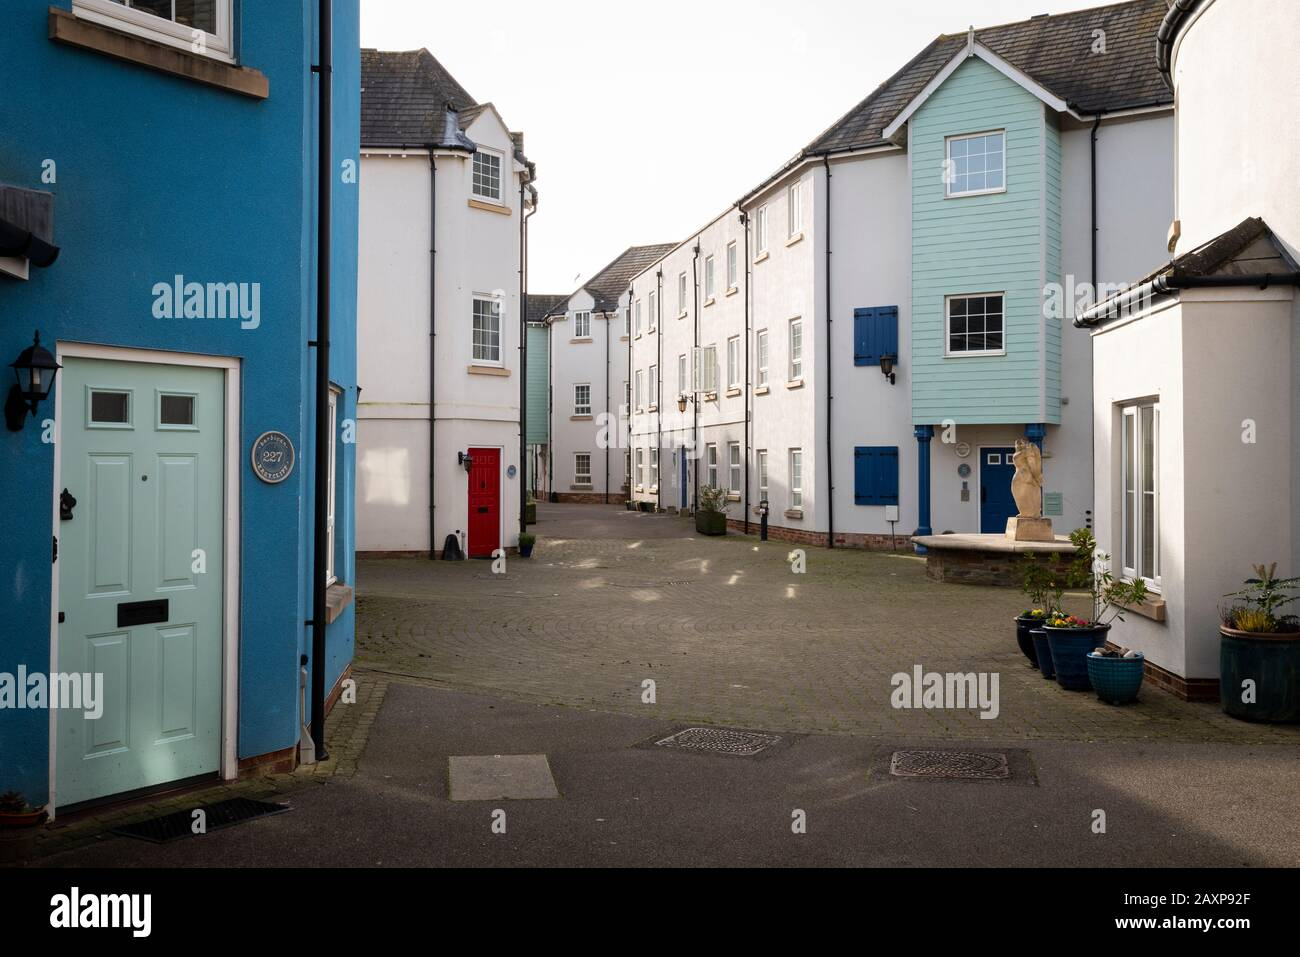 Portishead, England UK: Cheerful coloured cottages by The Barbican in the old part of town. Stock Photo